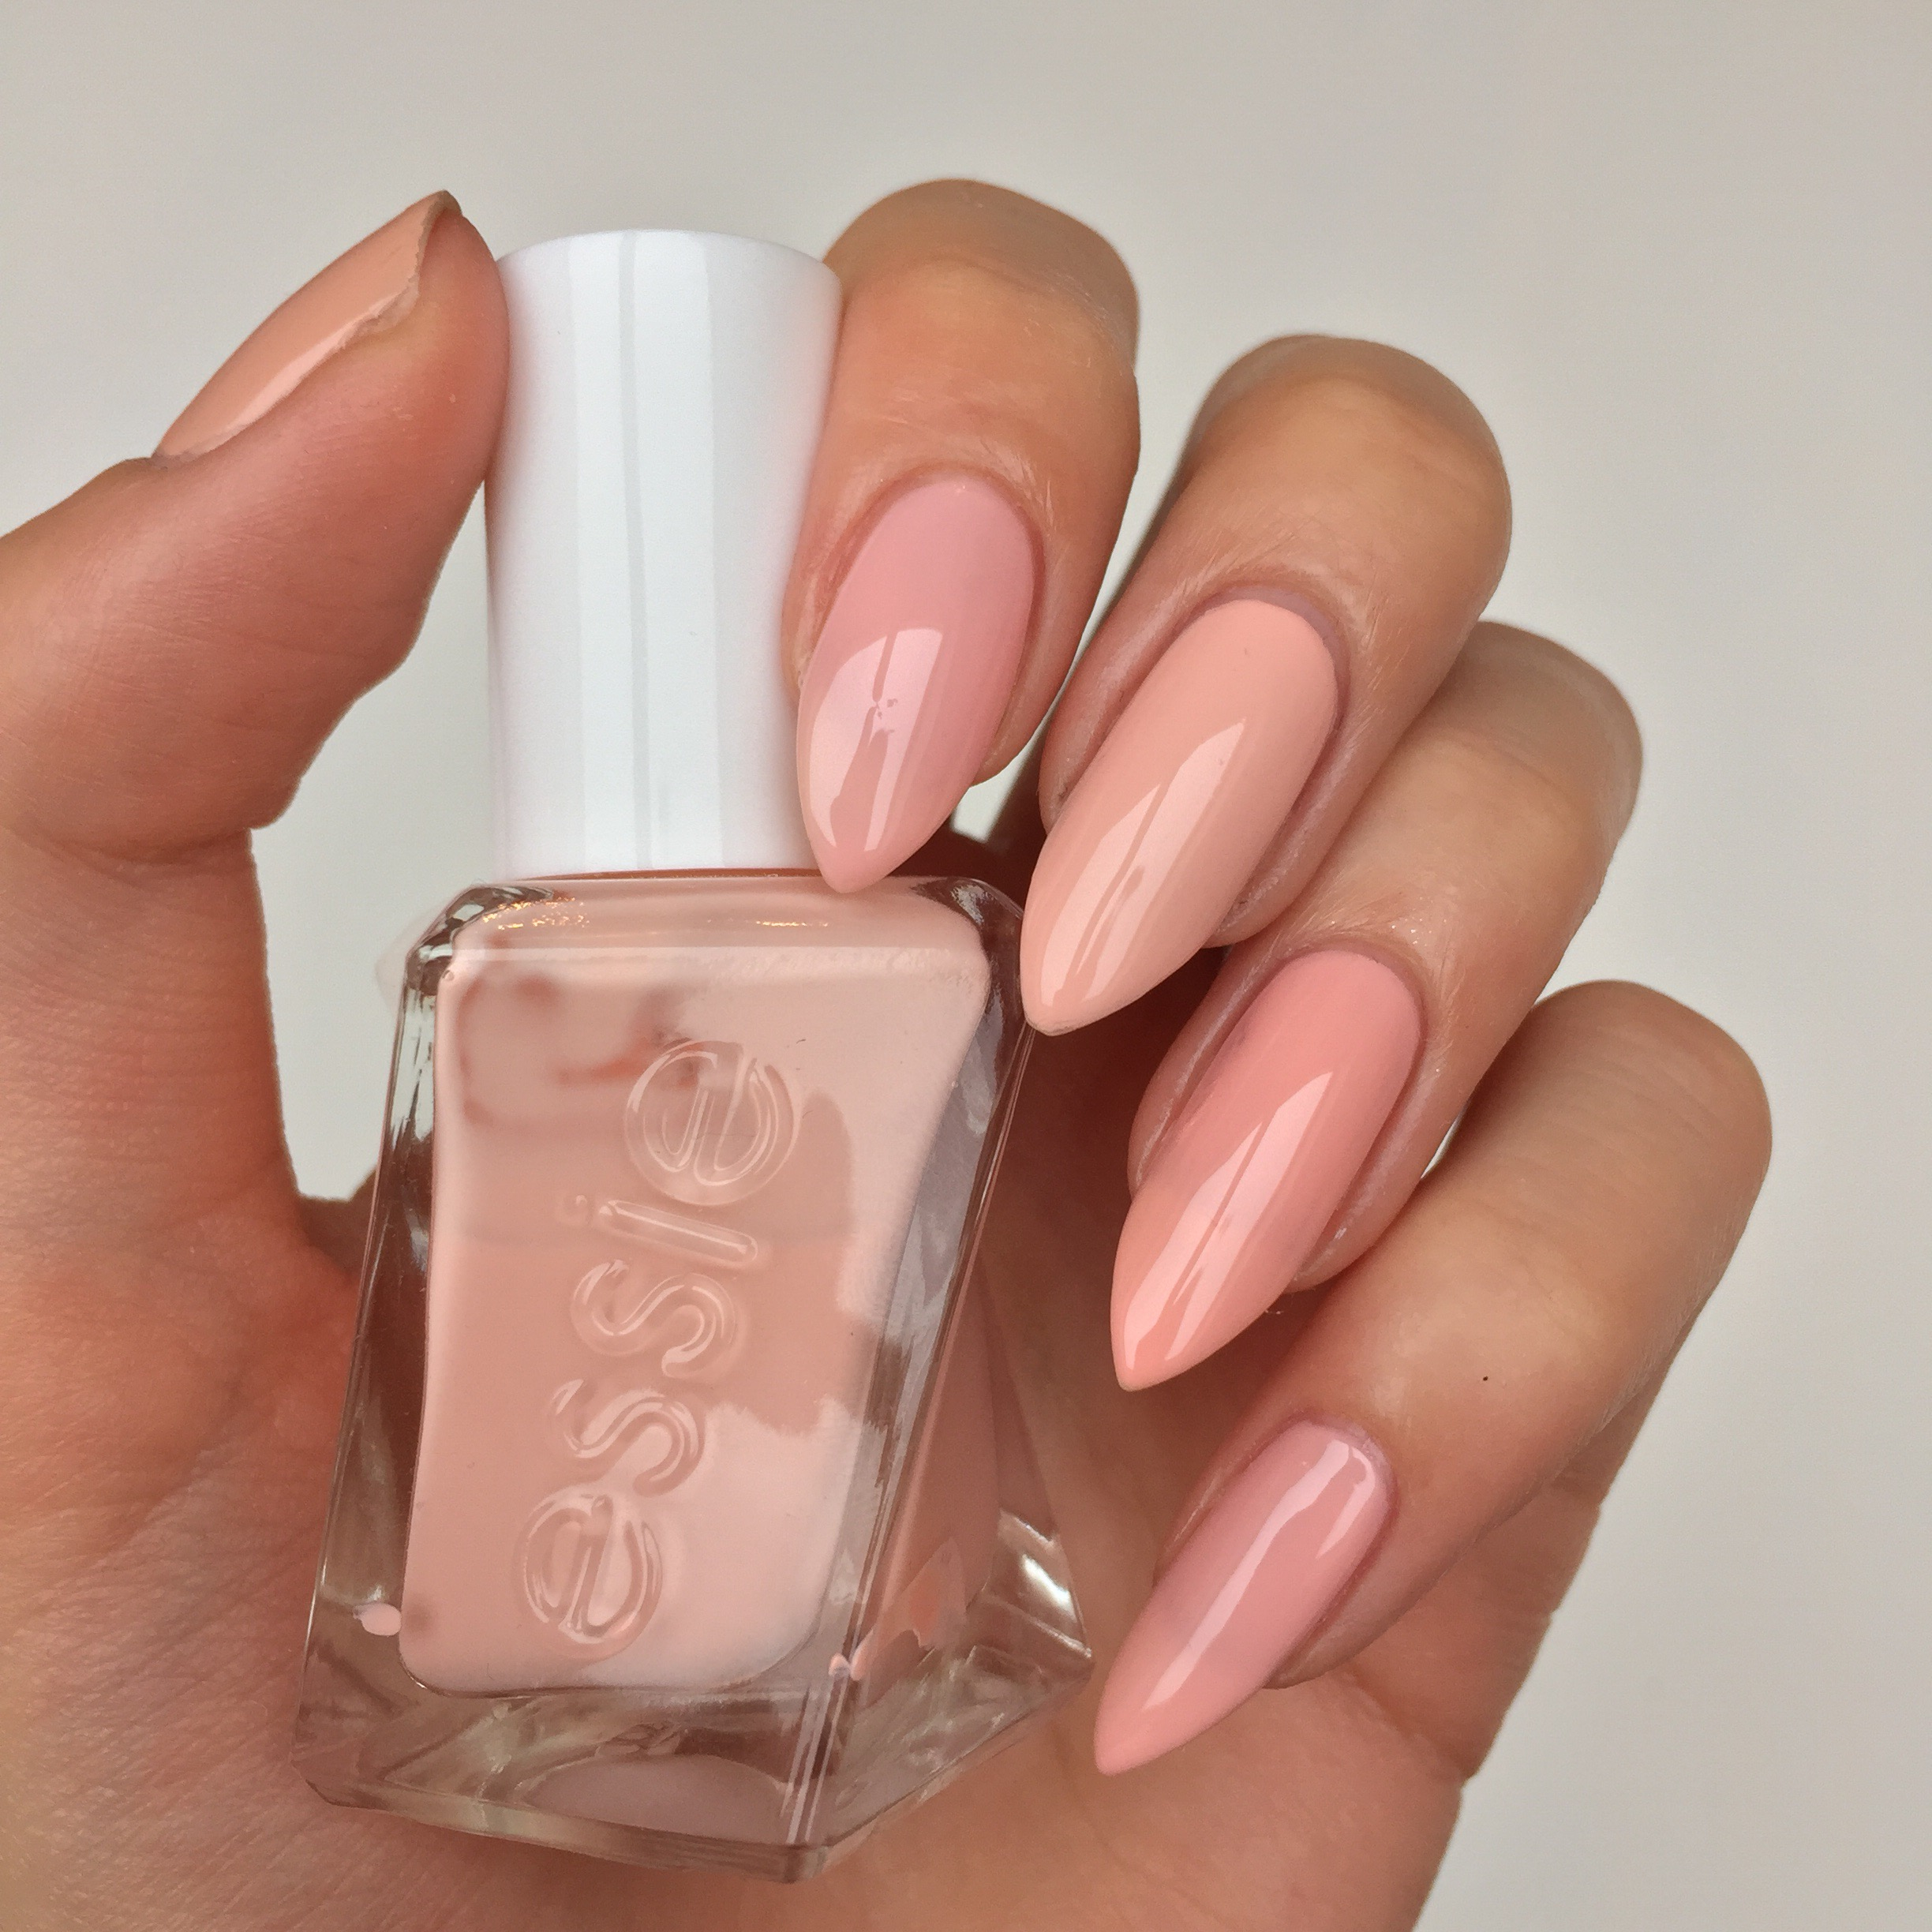 essieneutrals | swatches and reviews of Essie whites, pinks and neutrals